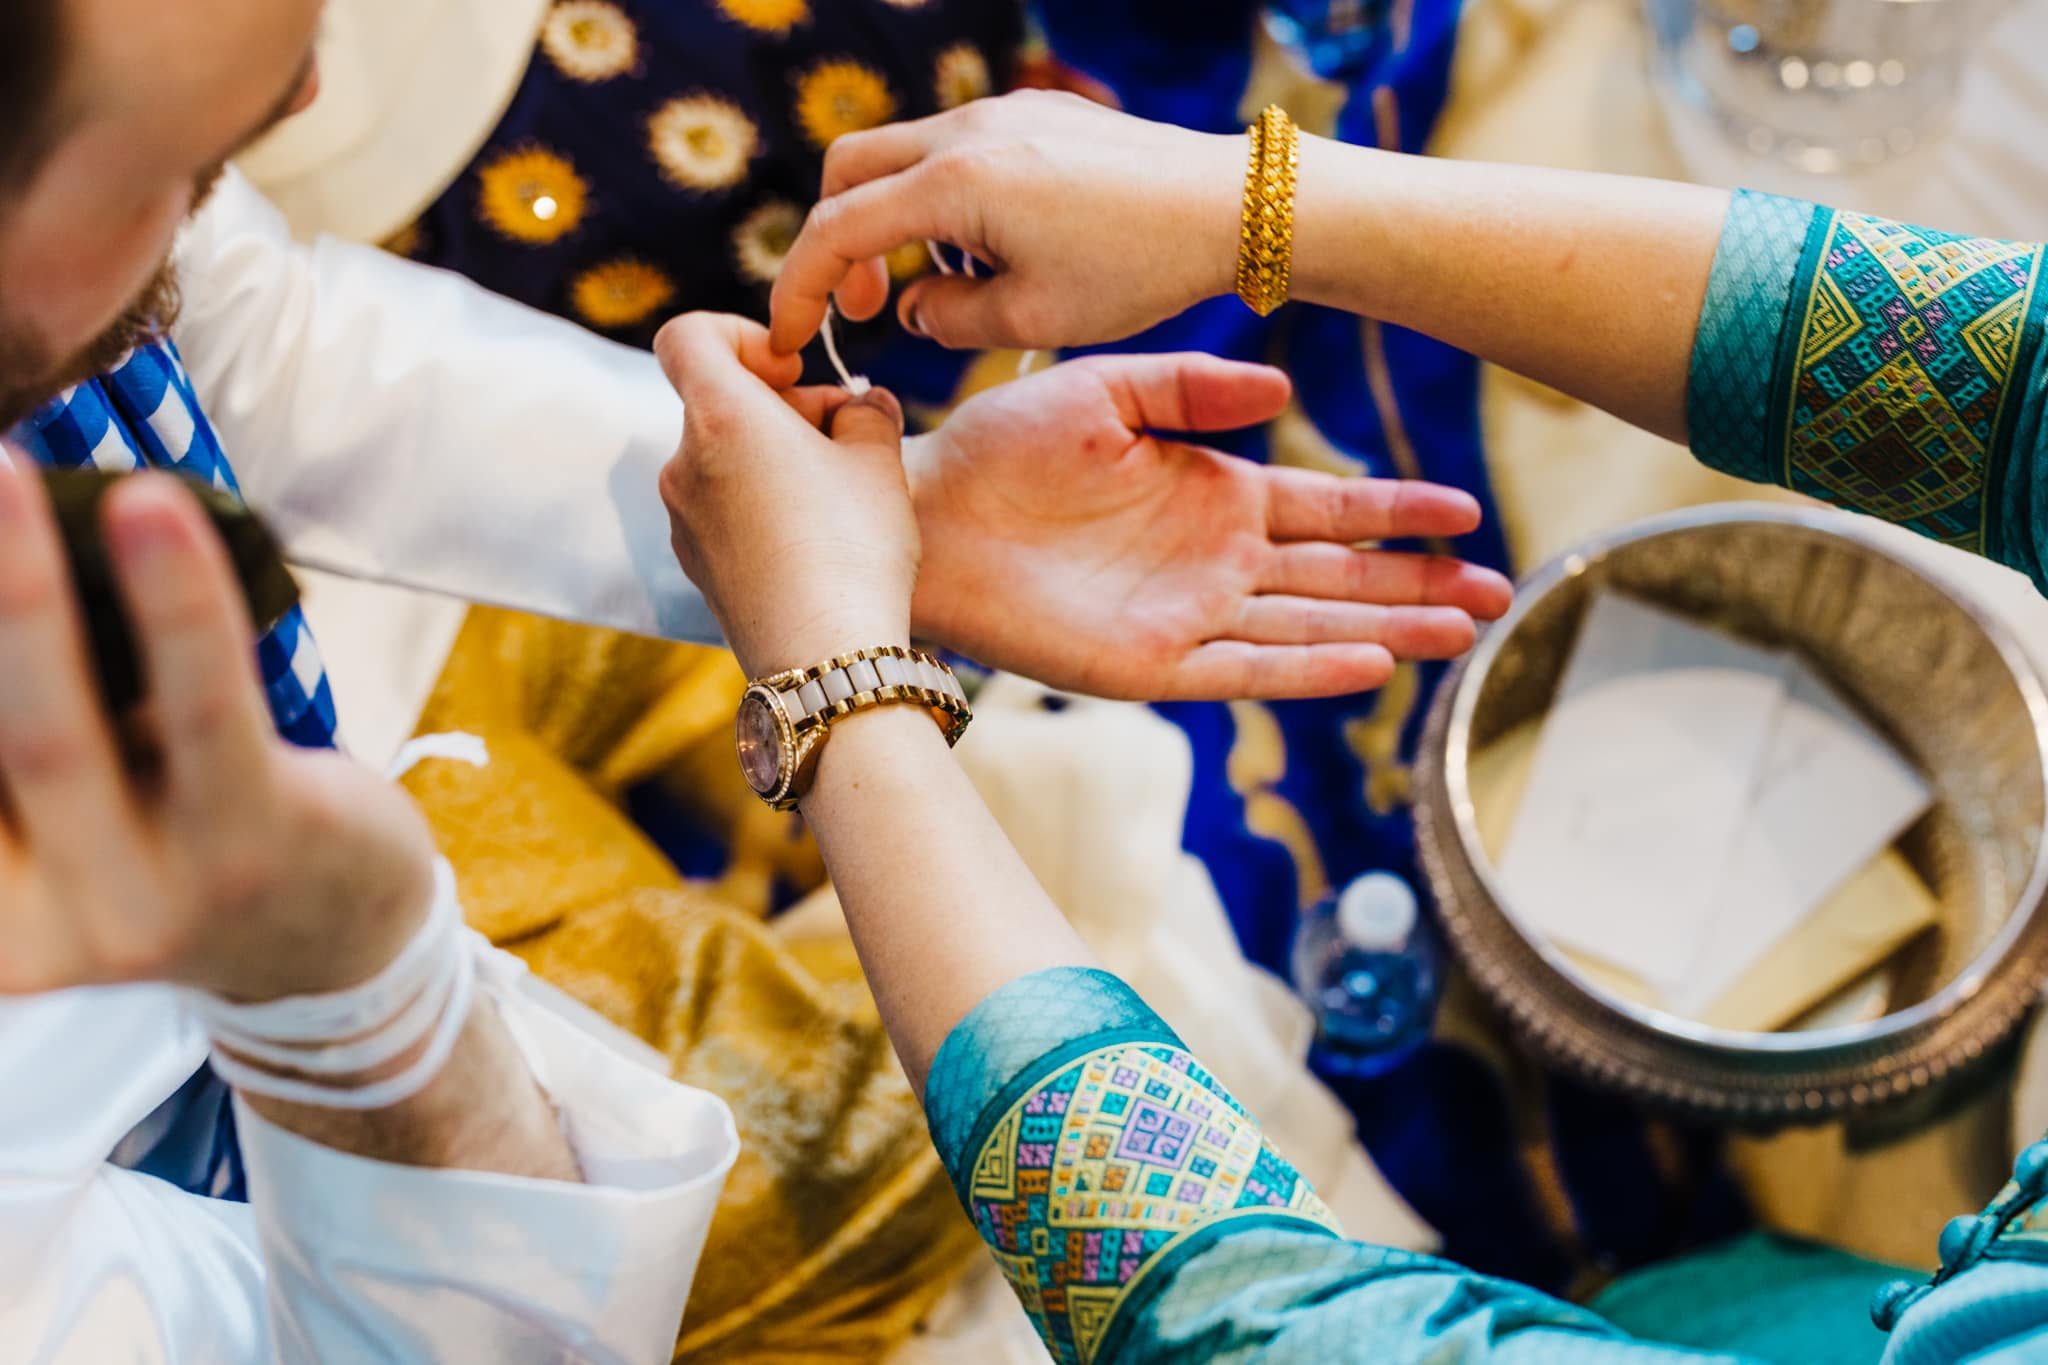 Relative ties string on groom's wrist during traditional lao wedding ceremony to bless his marriage